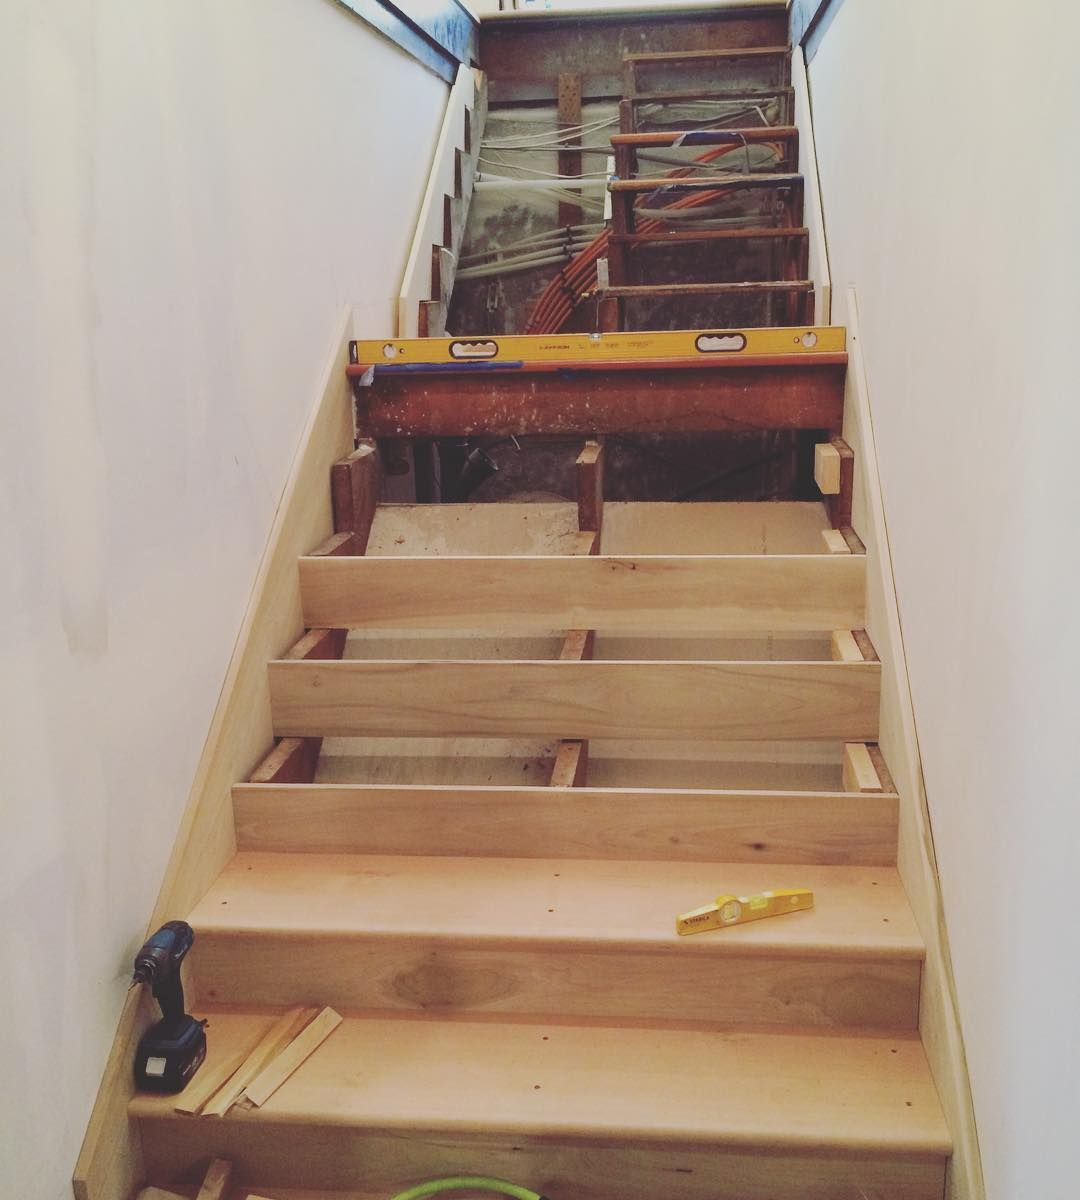 Mid Install Basement Stairs New Skirt Boards Treads And | Cost To Replace Basement Stairs | Stair Case | Stair Tread | Carpet | Hardwood | Unfinished Basement